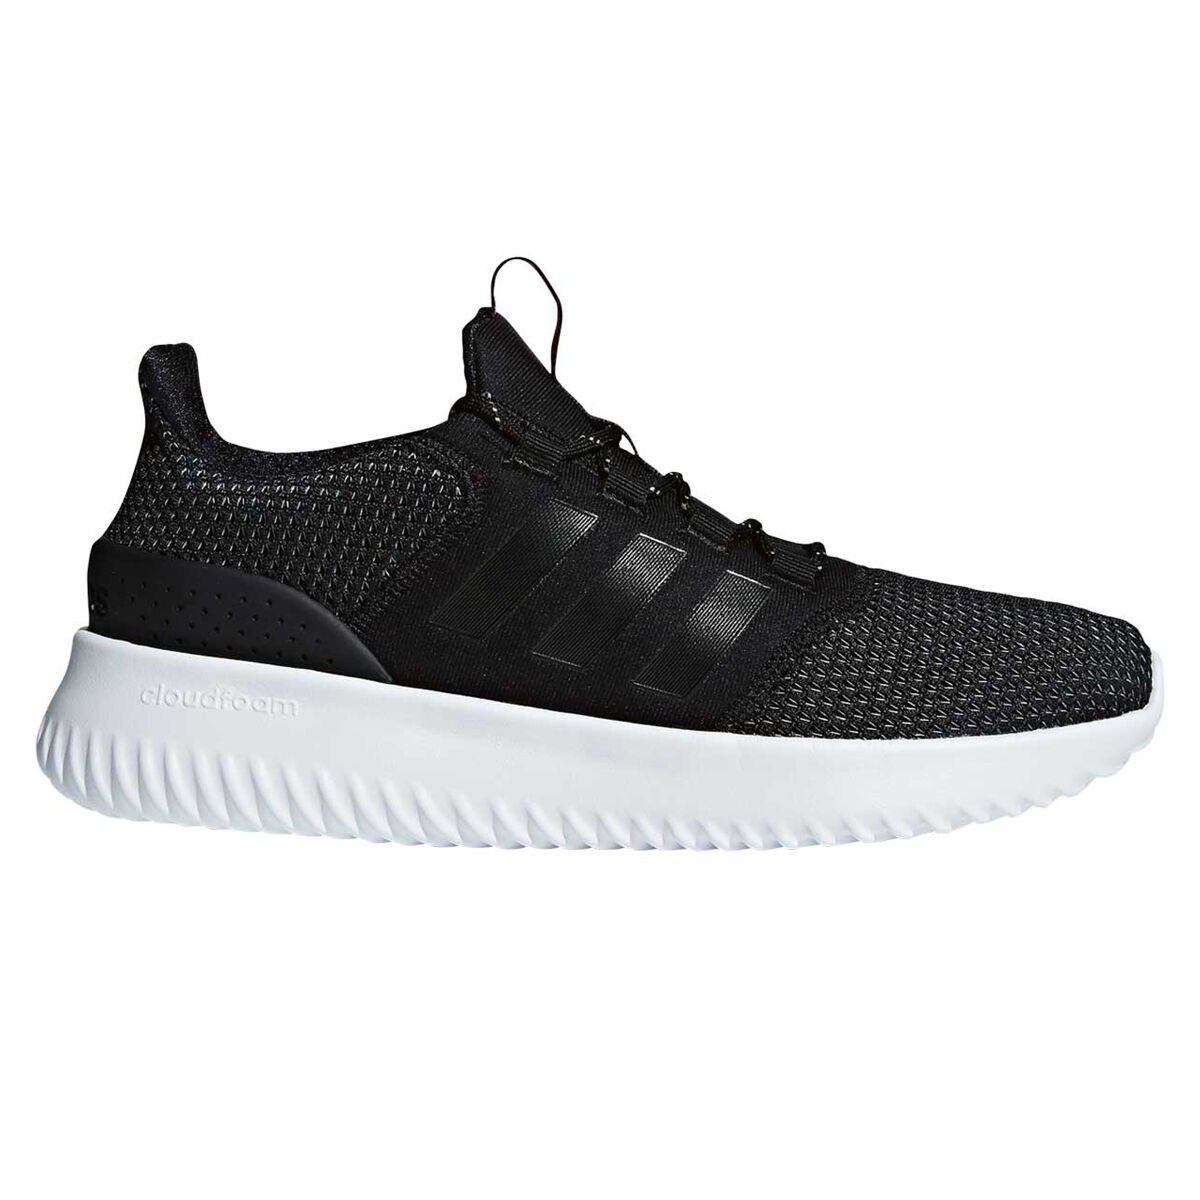 2020 Adidas Cloudfoam Ultimate Basketball Black Black Roller